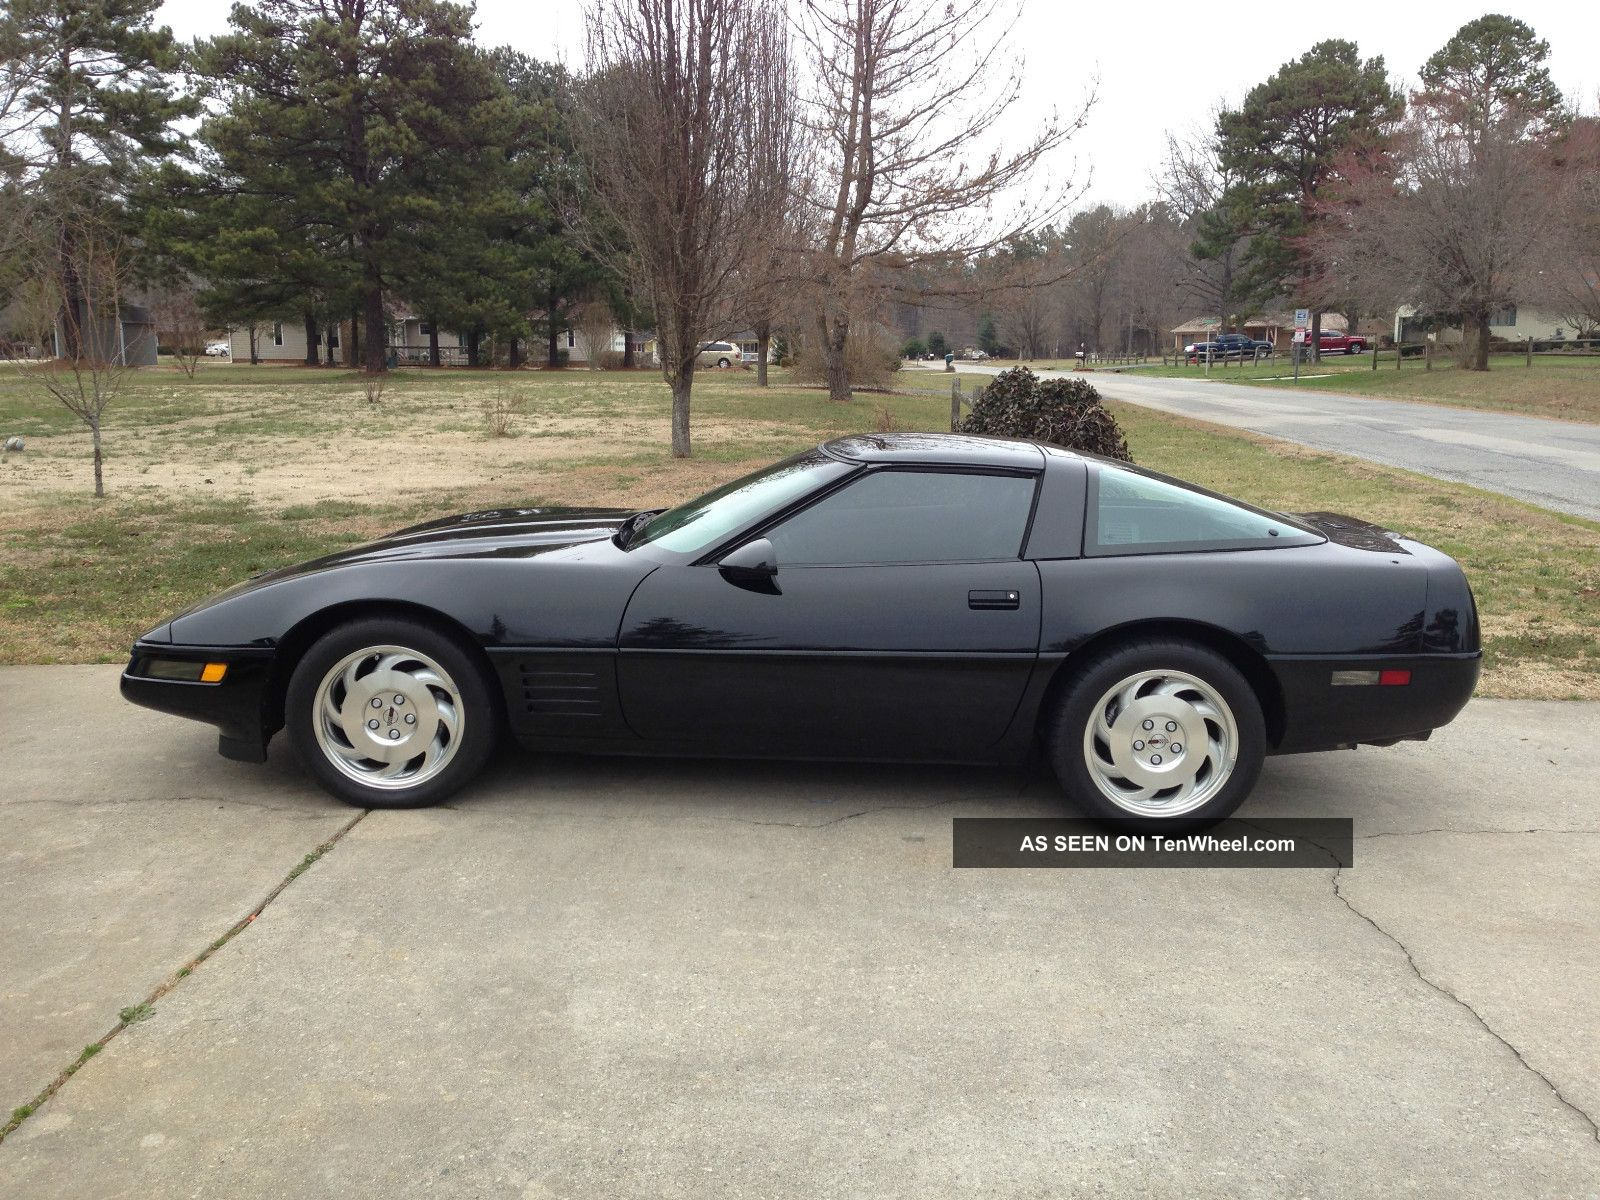 Performance Upgrades moreover 16144 1994 chevrolet corvette base hatchback 2   door 5   7l black on black  auto 63k mil in addition 567 Cuanto Sabes De Coches moreover Phroilfireki likewise 610522 Mercedes Sl500 Like No Other. on is 300 with 2jz